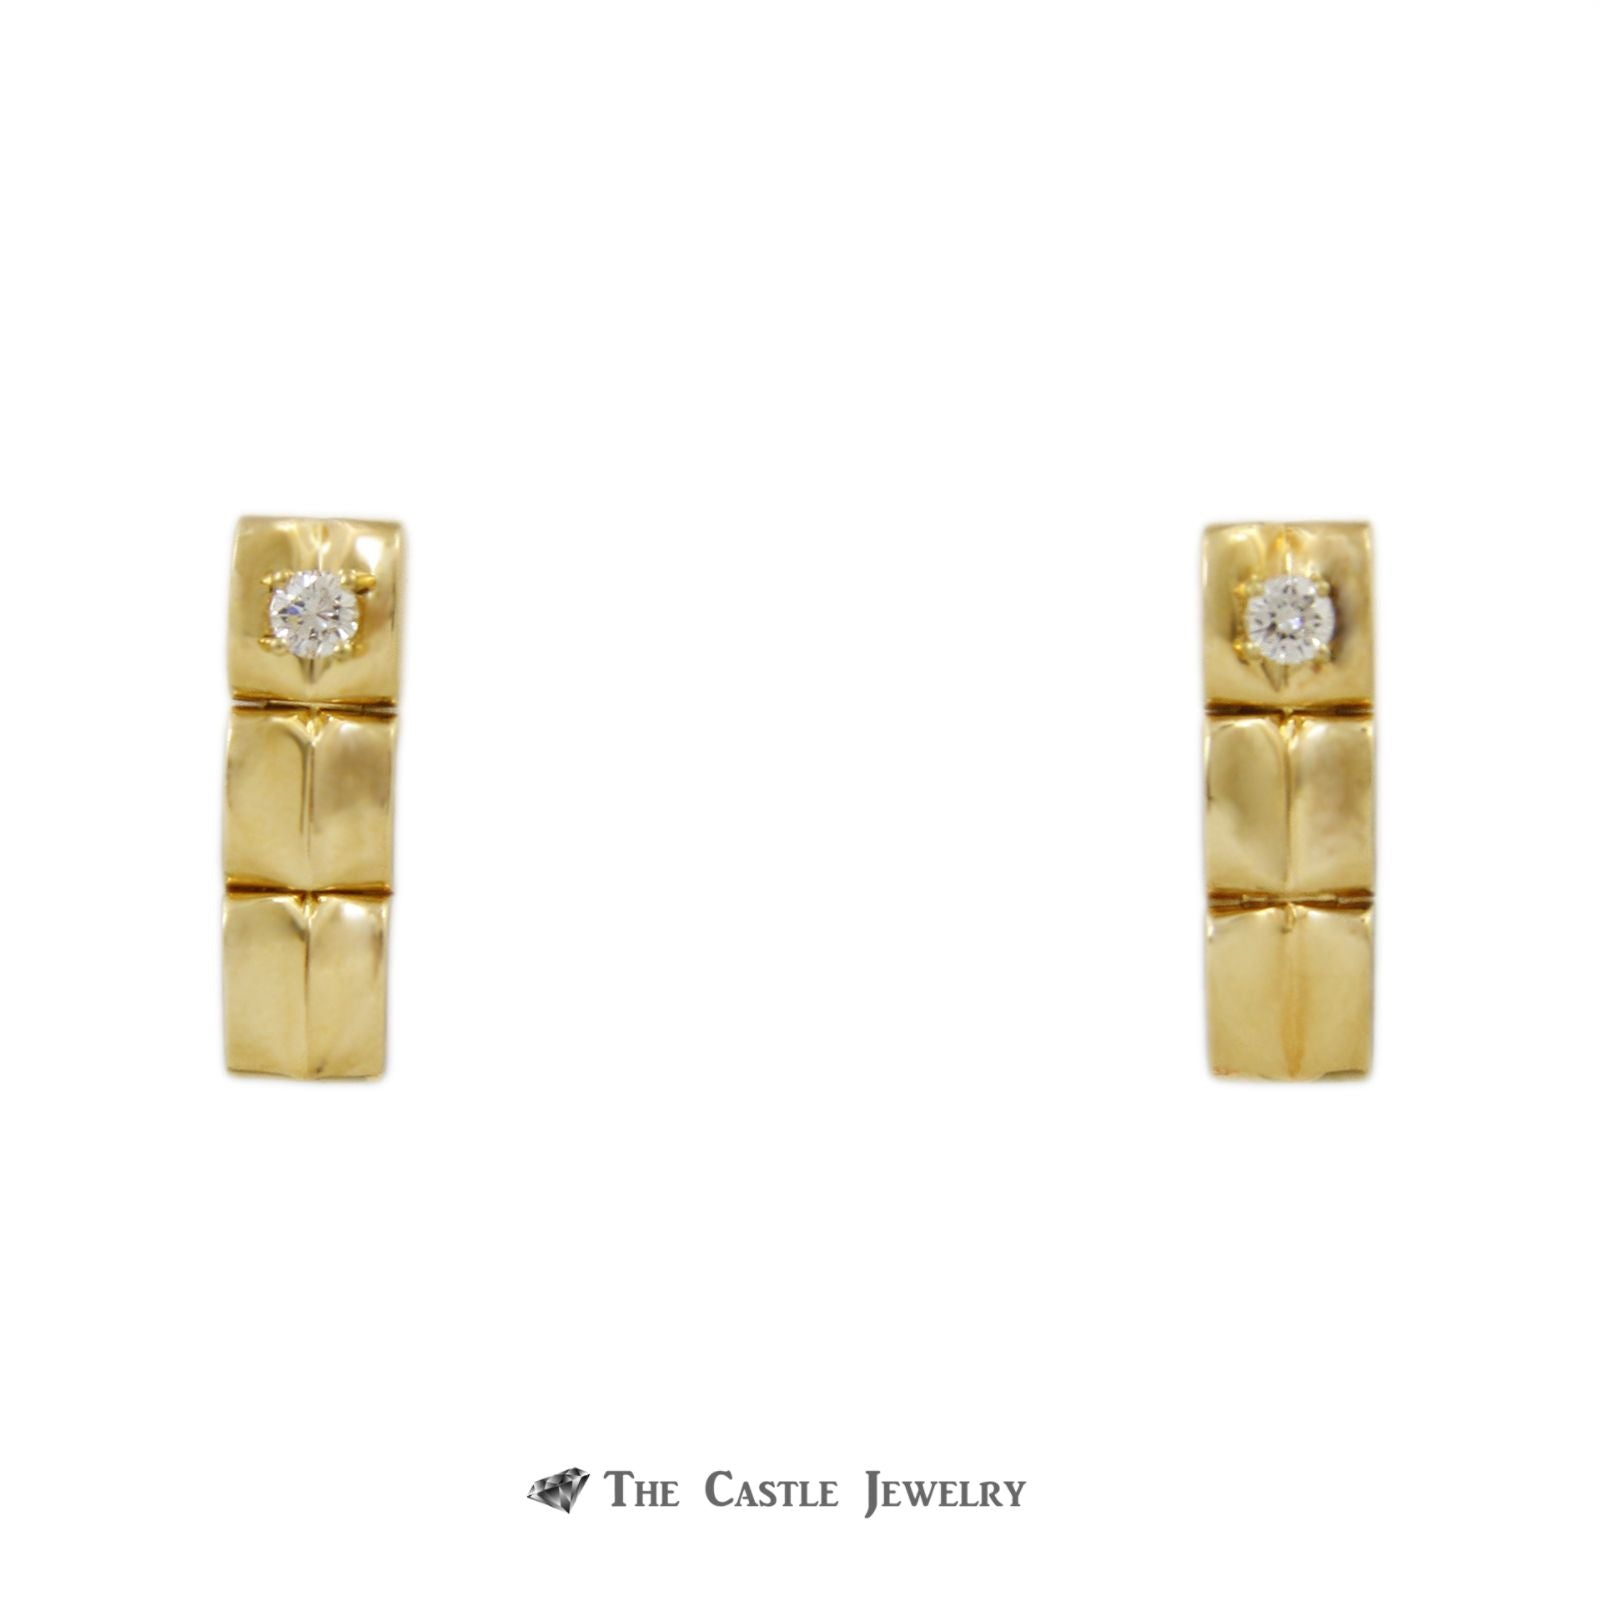 Escada Heart Drop Design Diamond Earrings with .30cttw Round Diamond